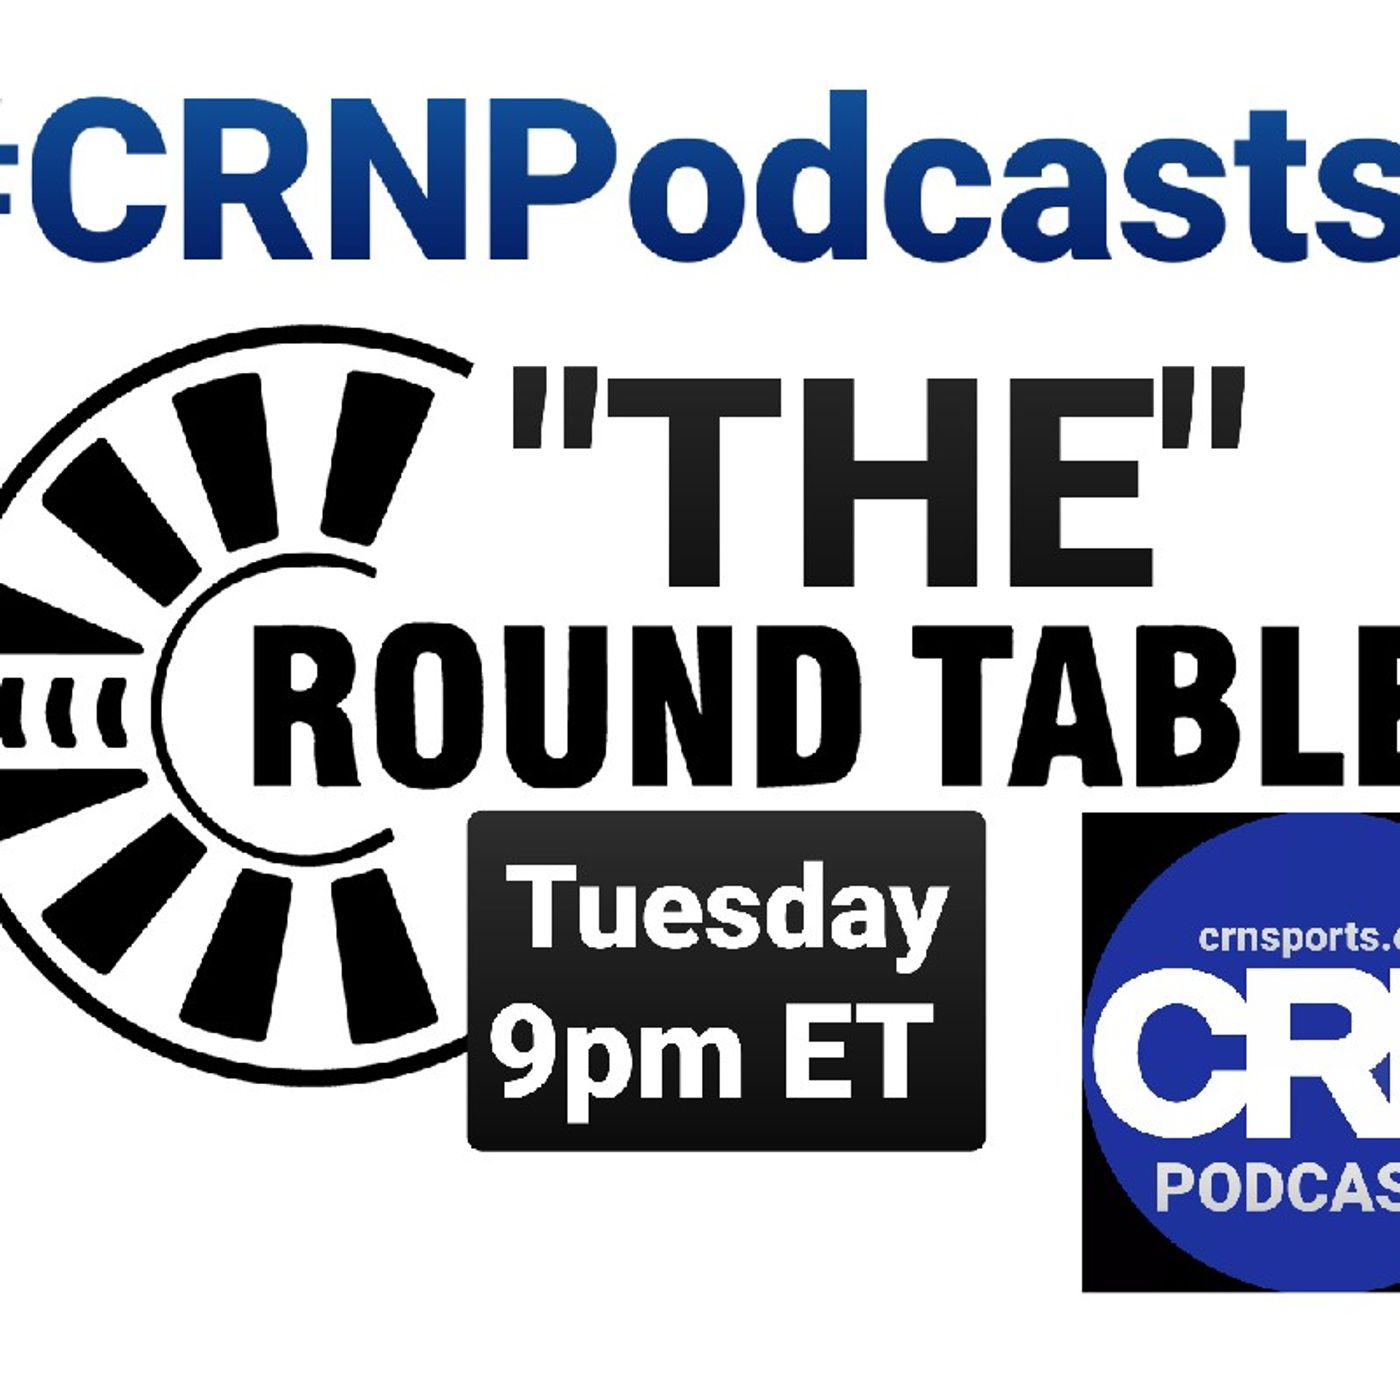 CRN Sports Episode #1 #TheRoundTable Podcast! #CRNSports #CRNPodcasts 🎙📱💻